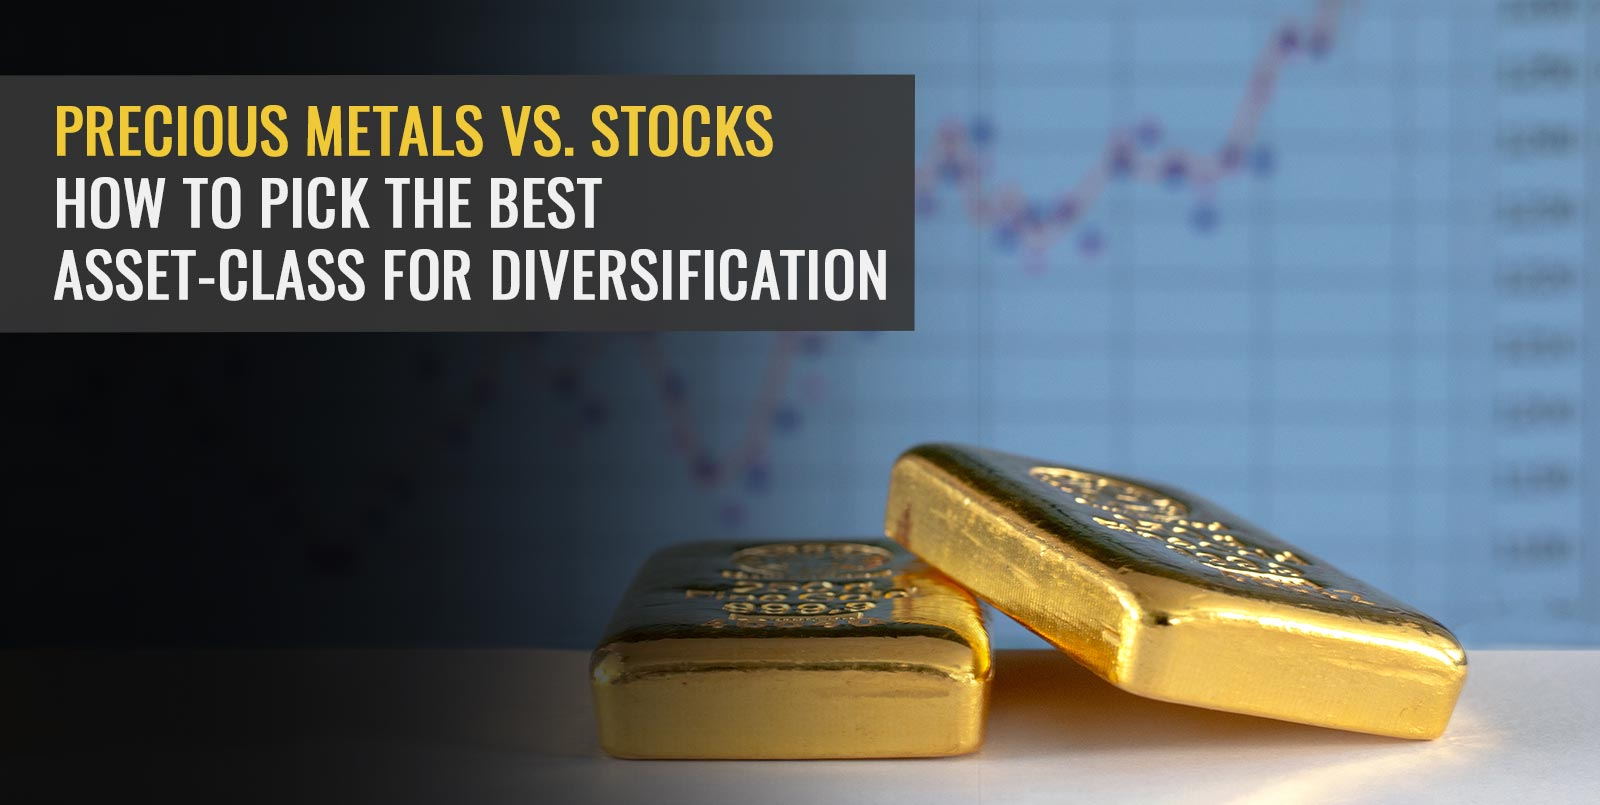 Precious Metals vs. Stocks: How To Pick The Best Asset-Class For Diversification